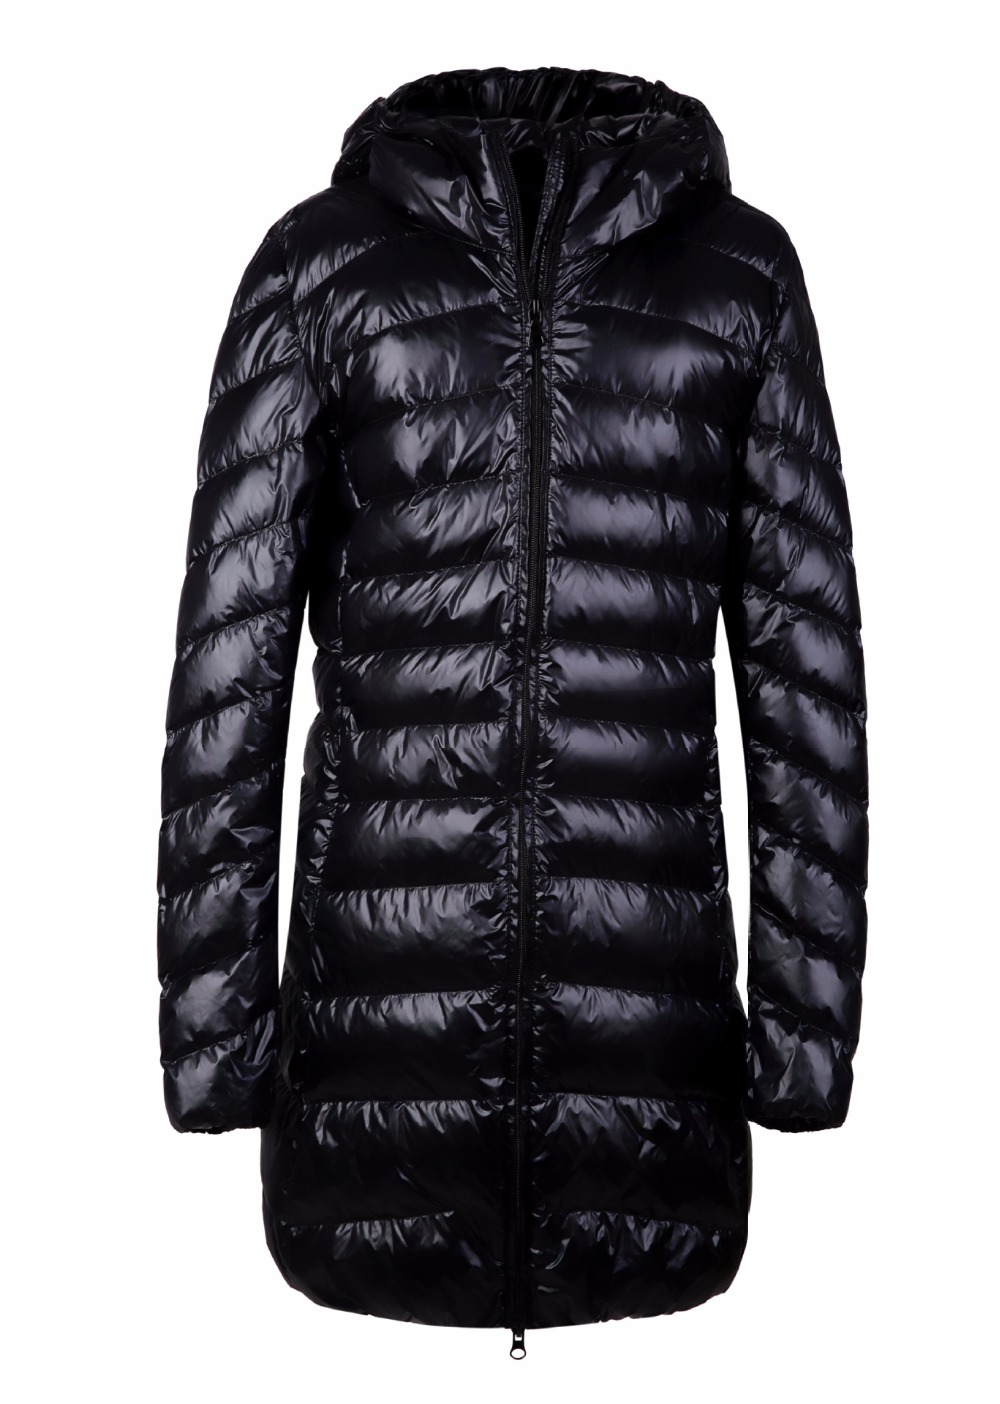 New 2016 female wither coat and jacket long thin jacket size slim with hooded coat women parks plus size S-3XL